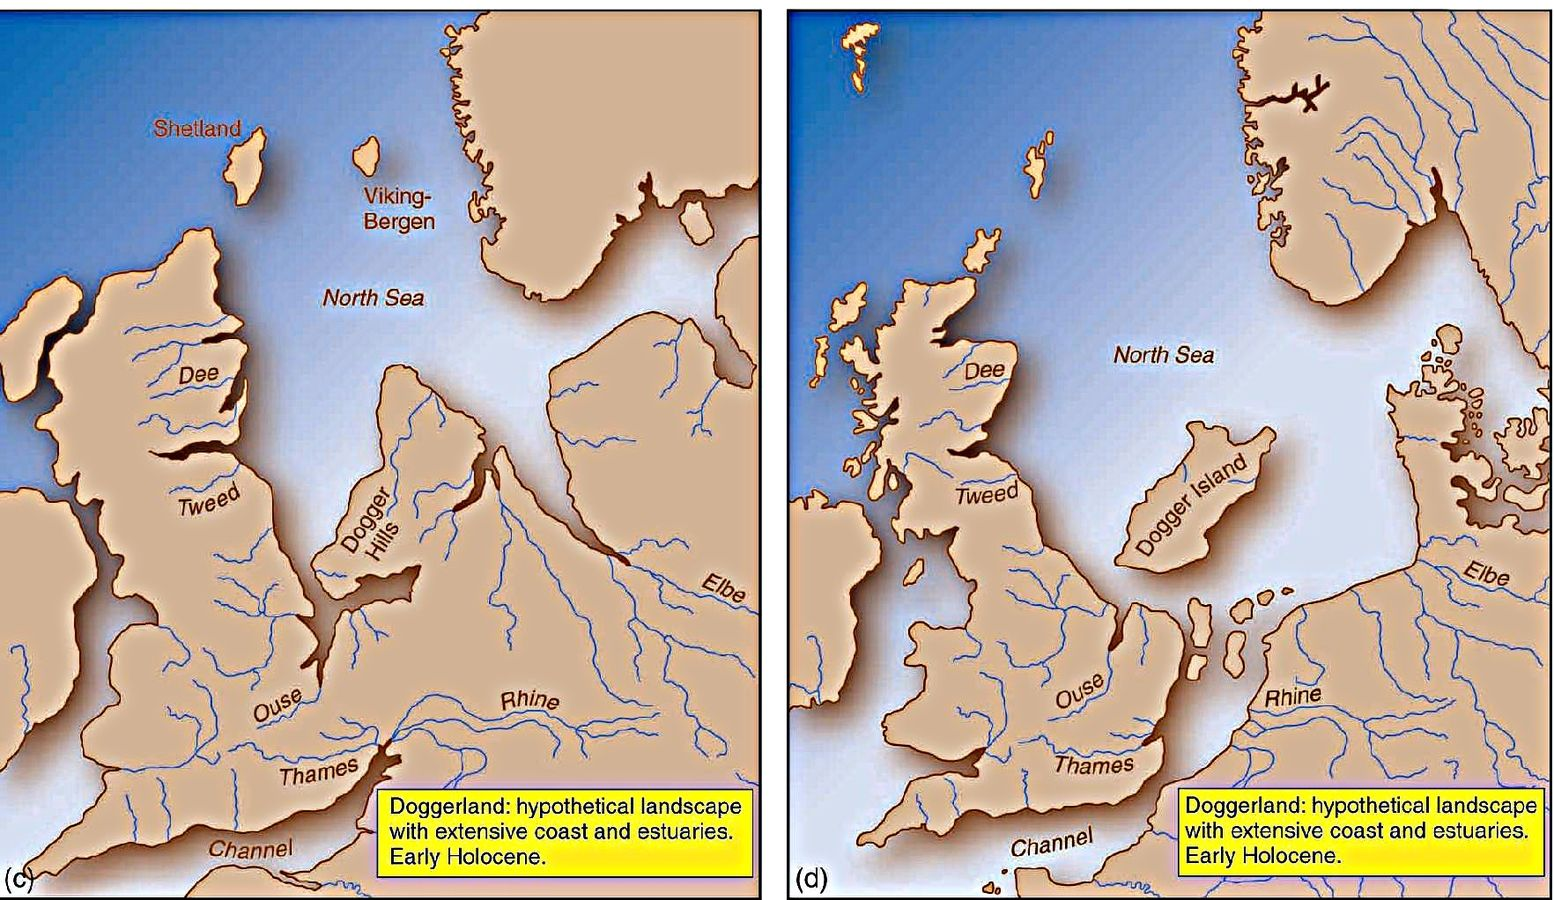 doggerlands lost world shows melting glaciers have drowned lands before and may again